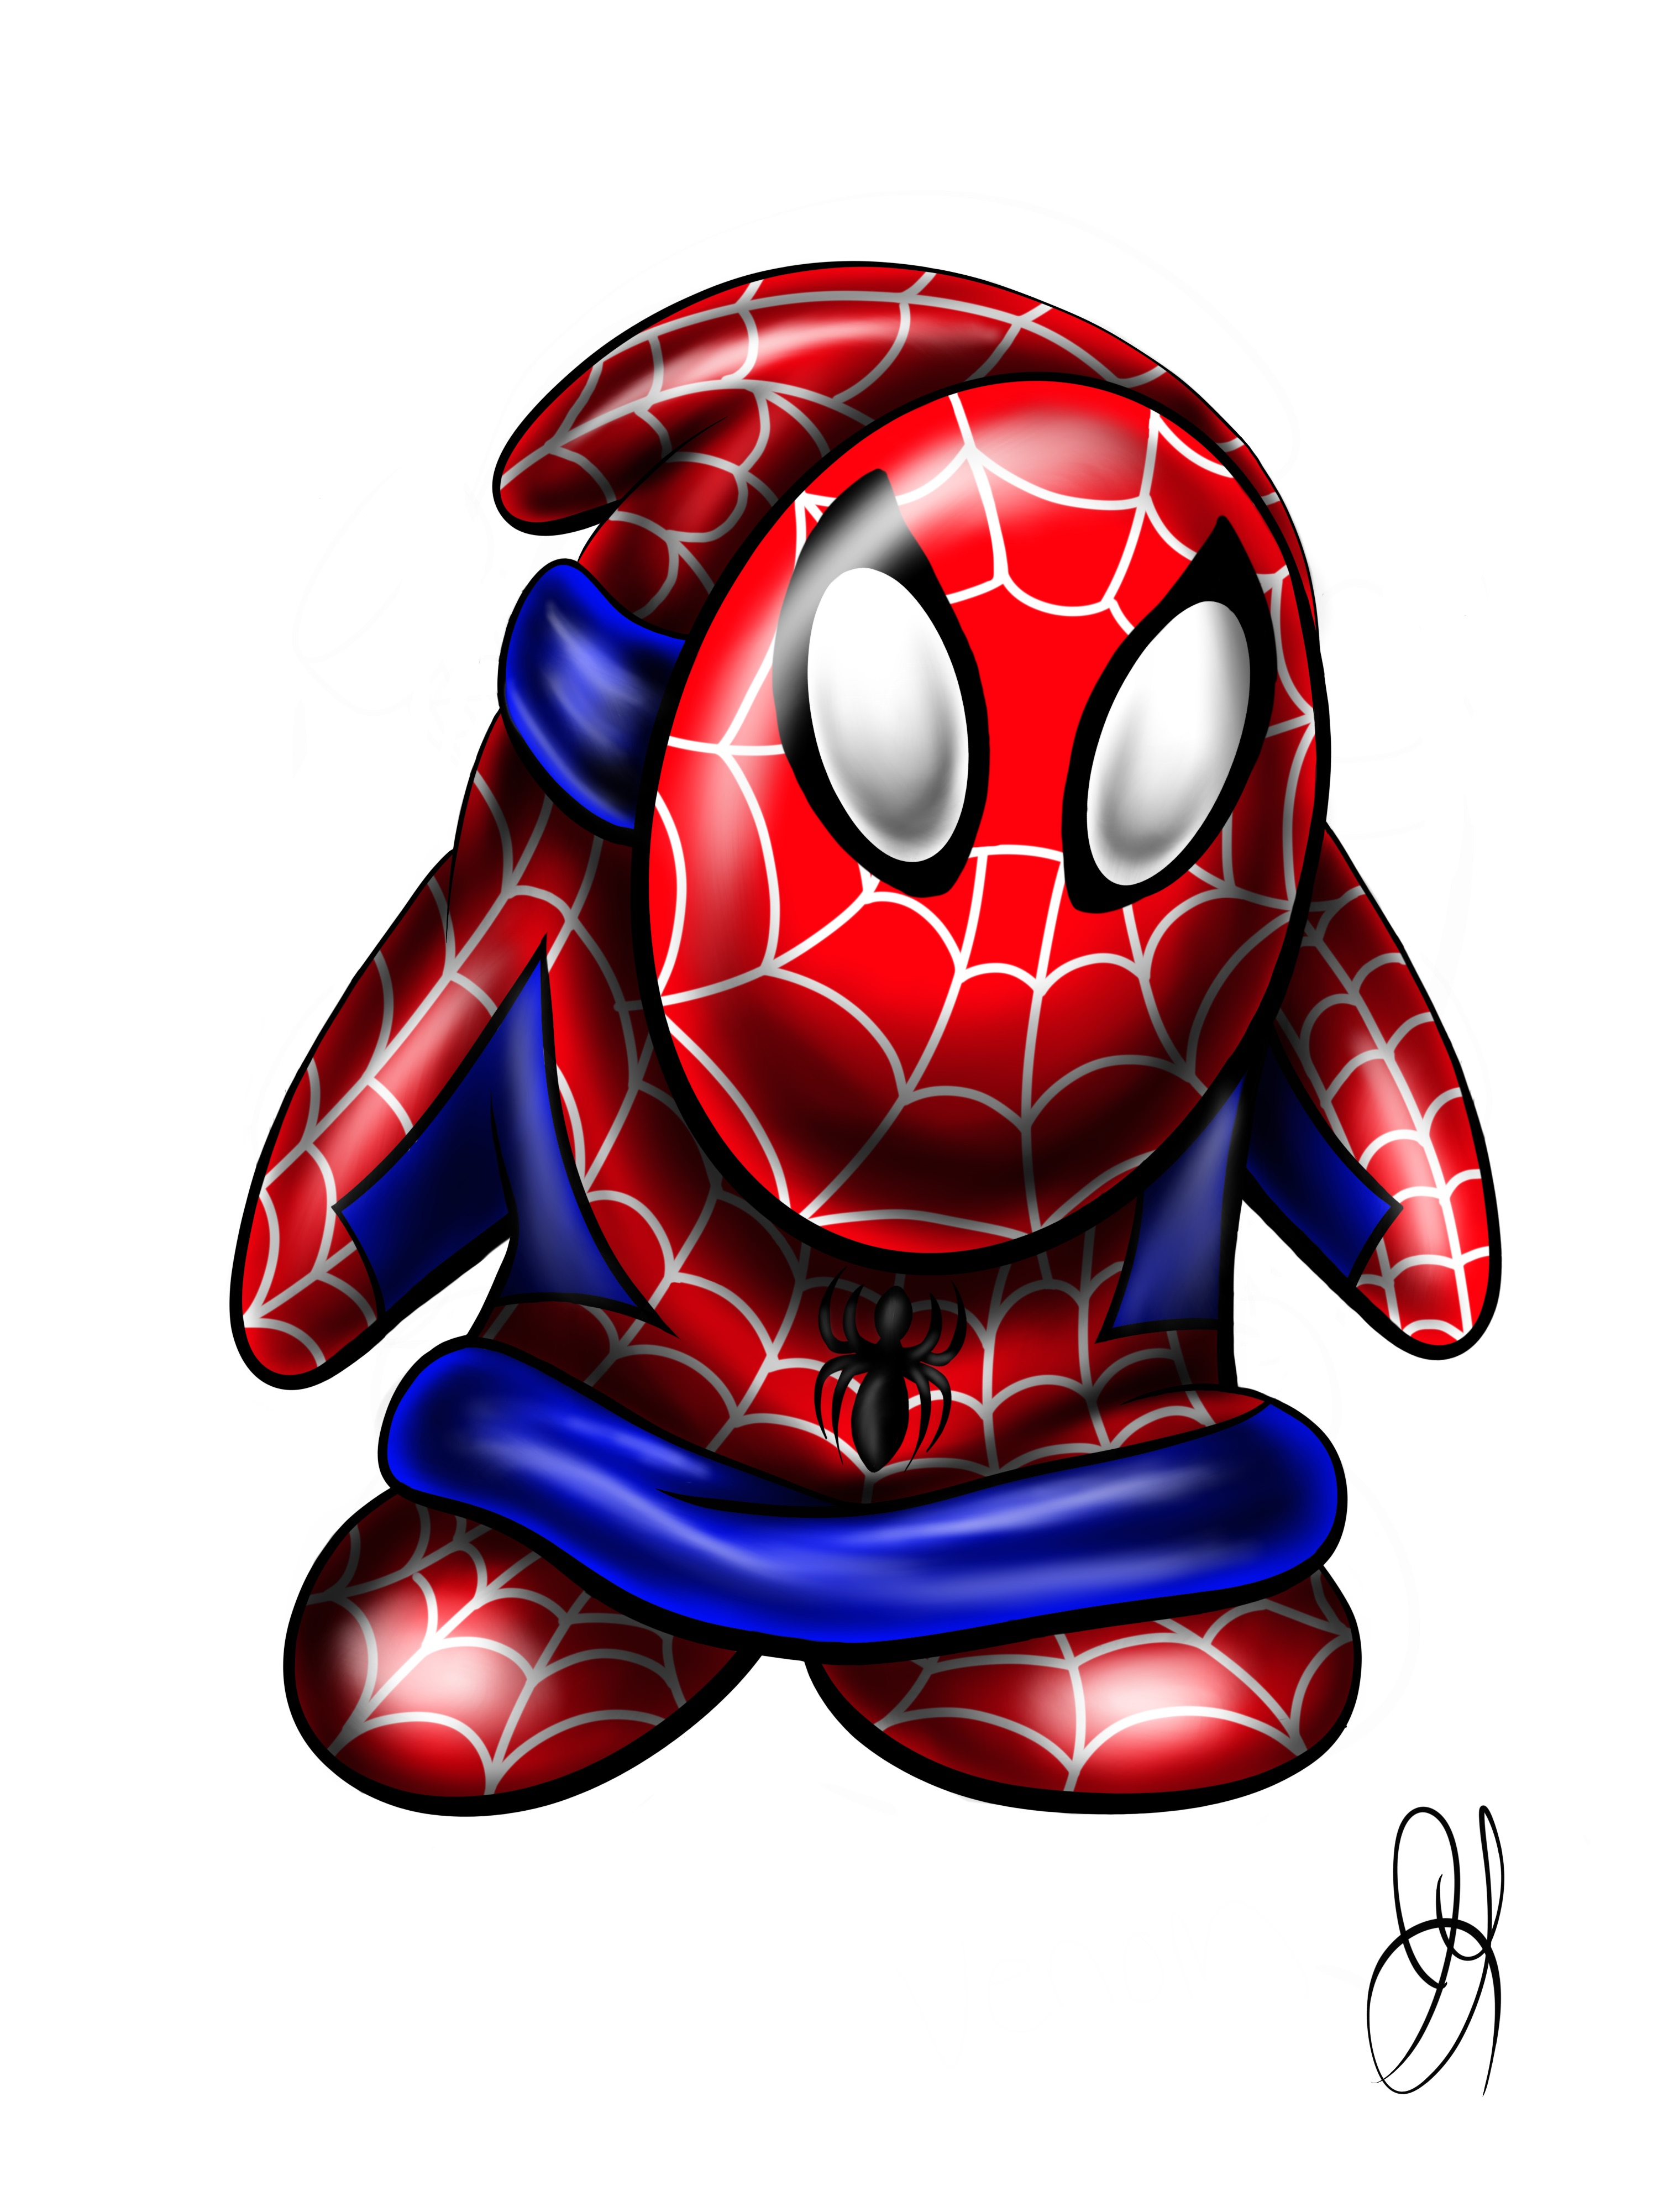 Spiderman Shyguy mash-up